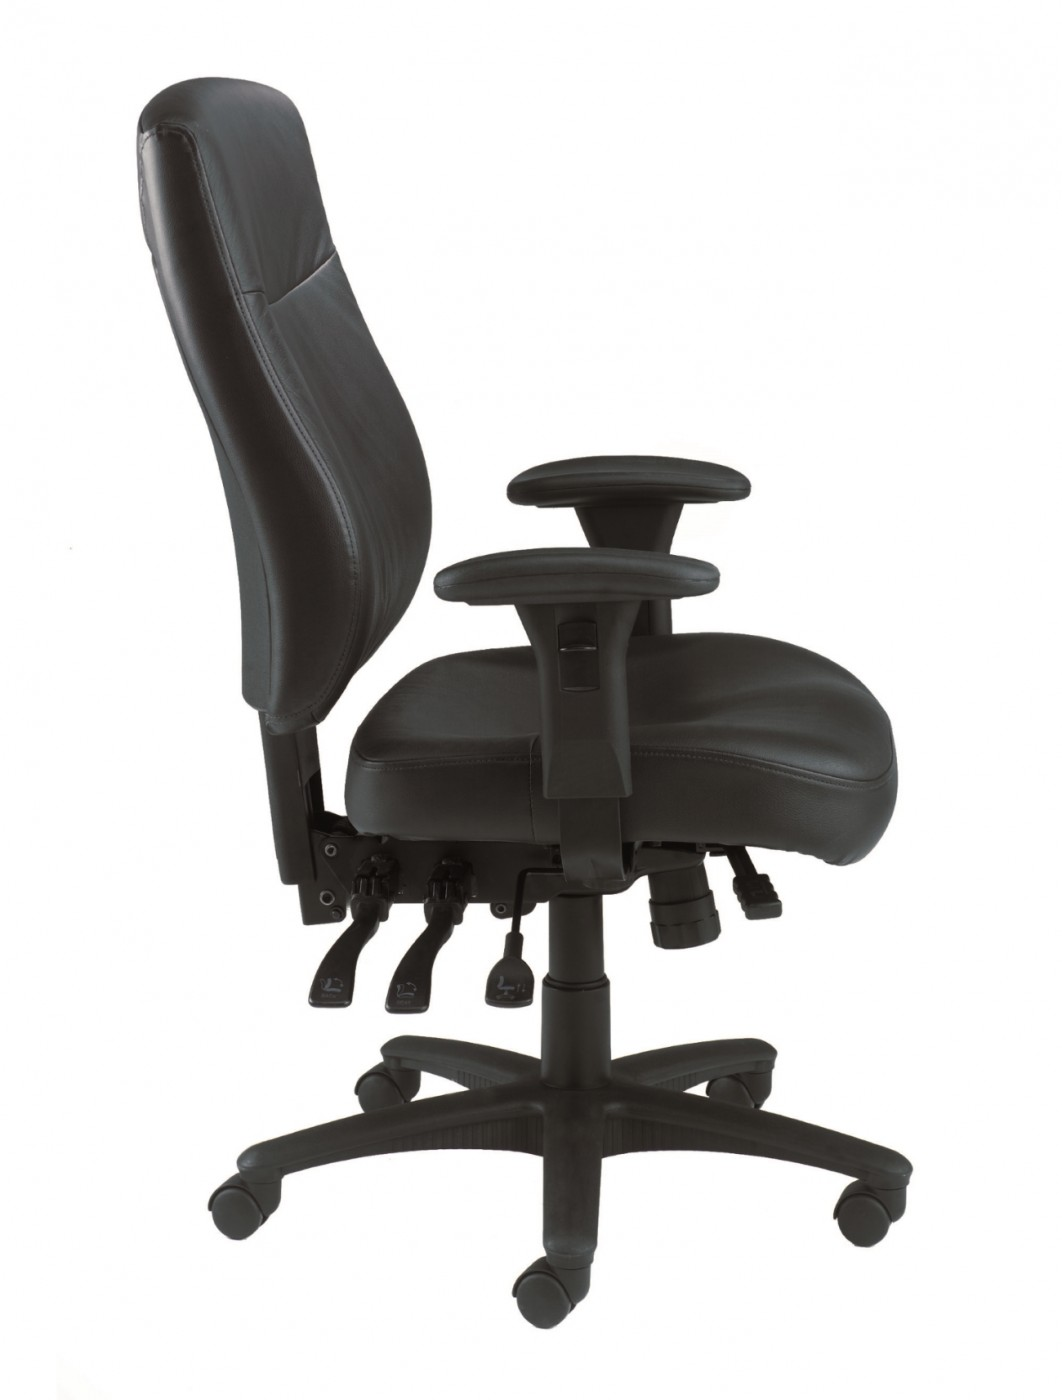 heavy duty gaming chair black spandex covers rental tc marathon 24 hour leather office ch1105